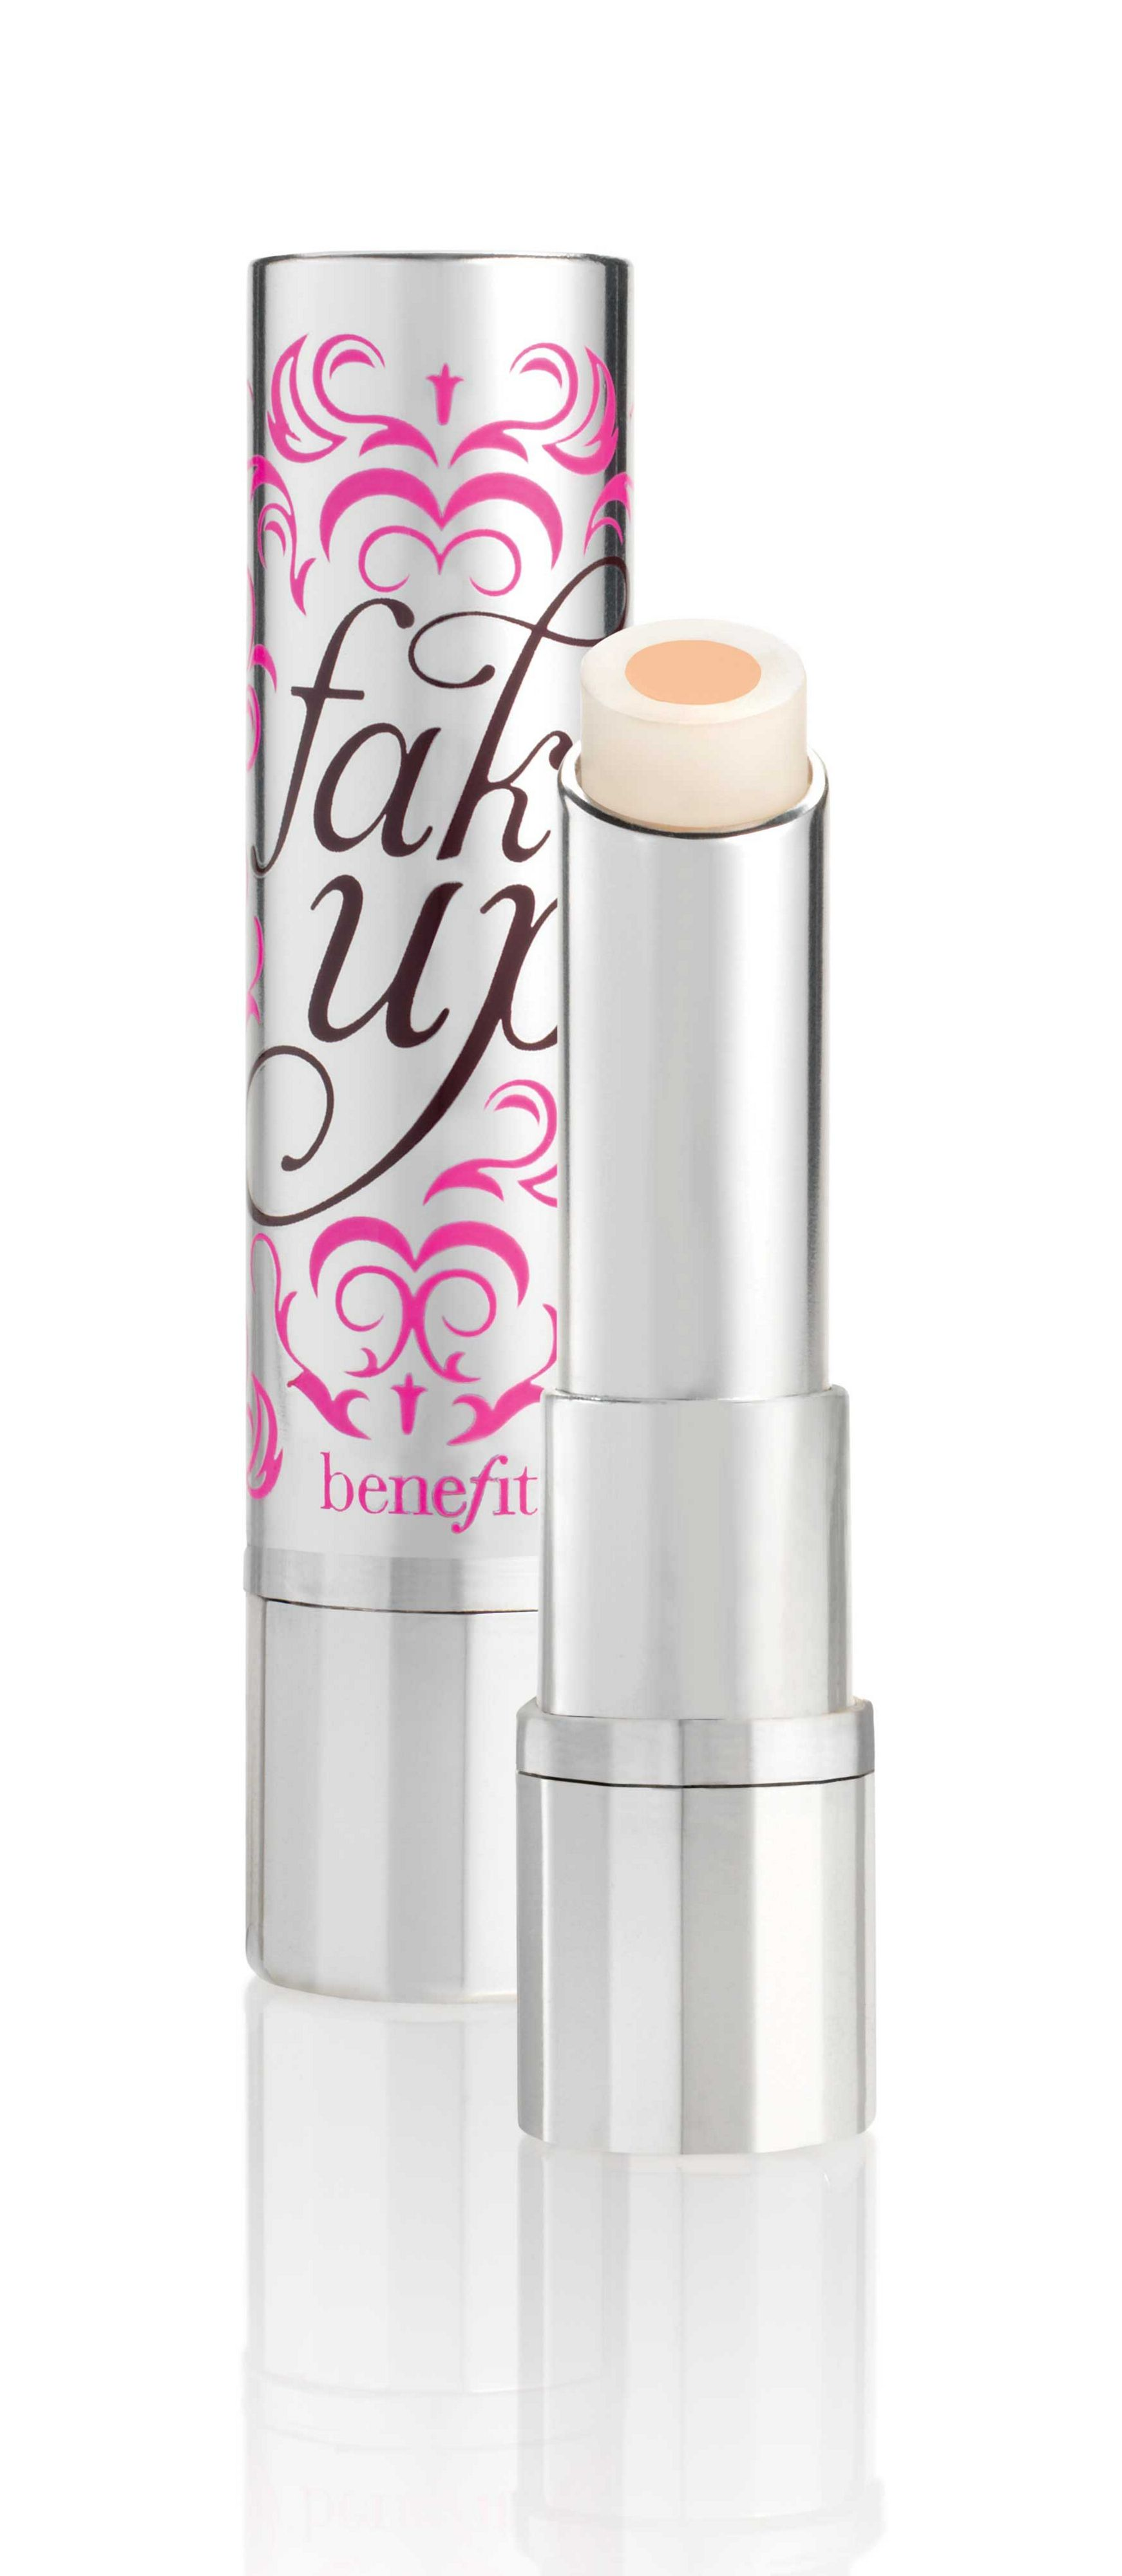 Fake Up Crease-Control Hydrating Concealer